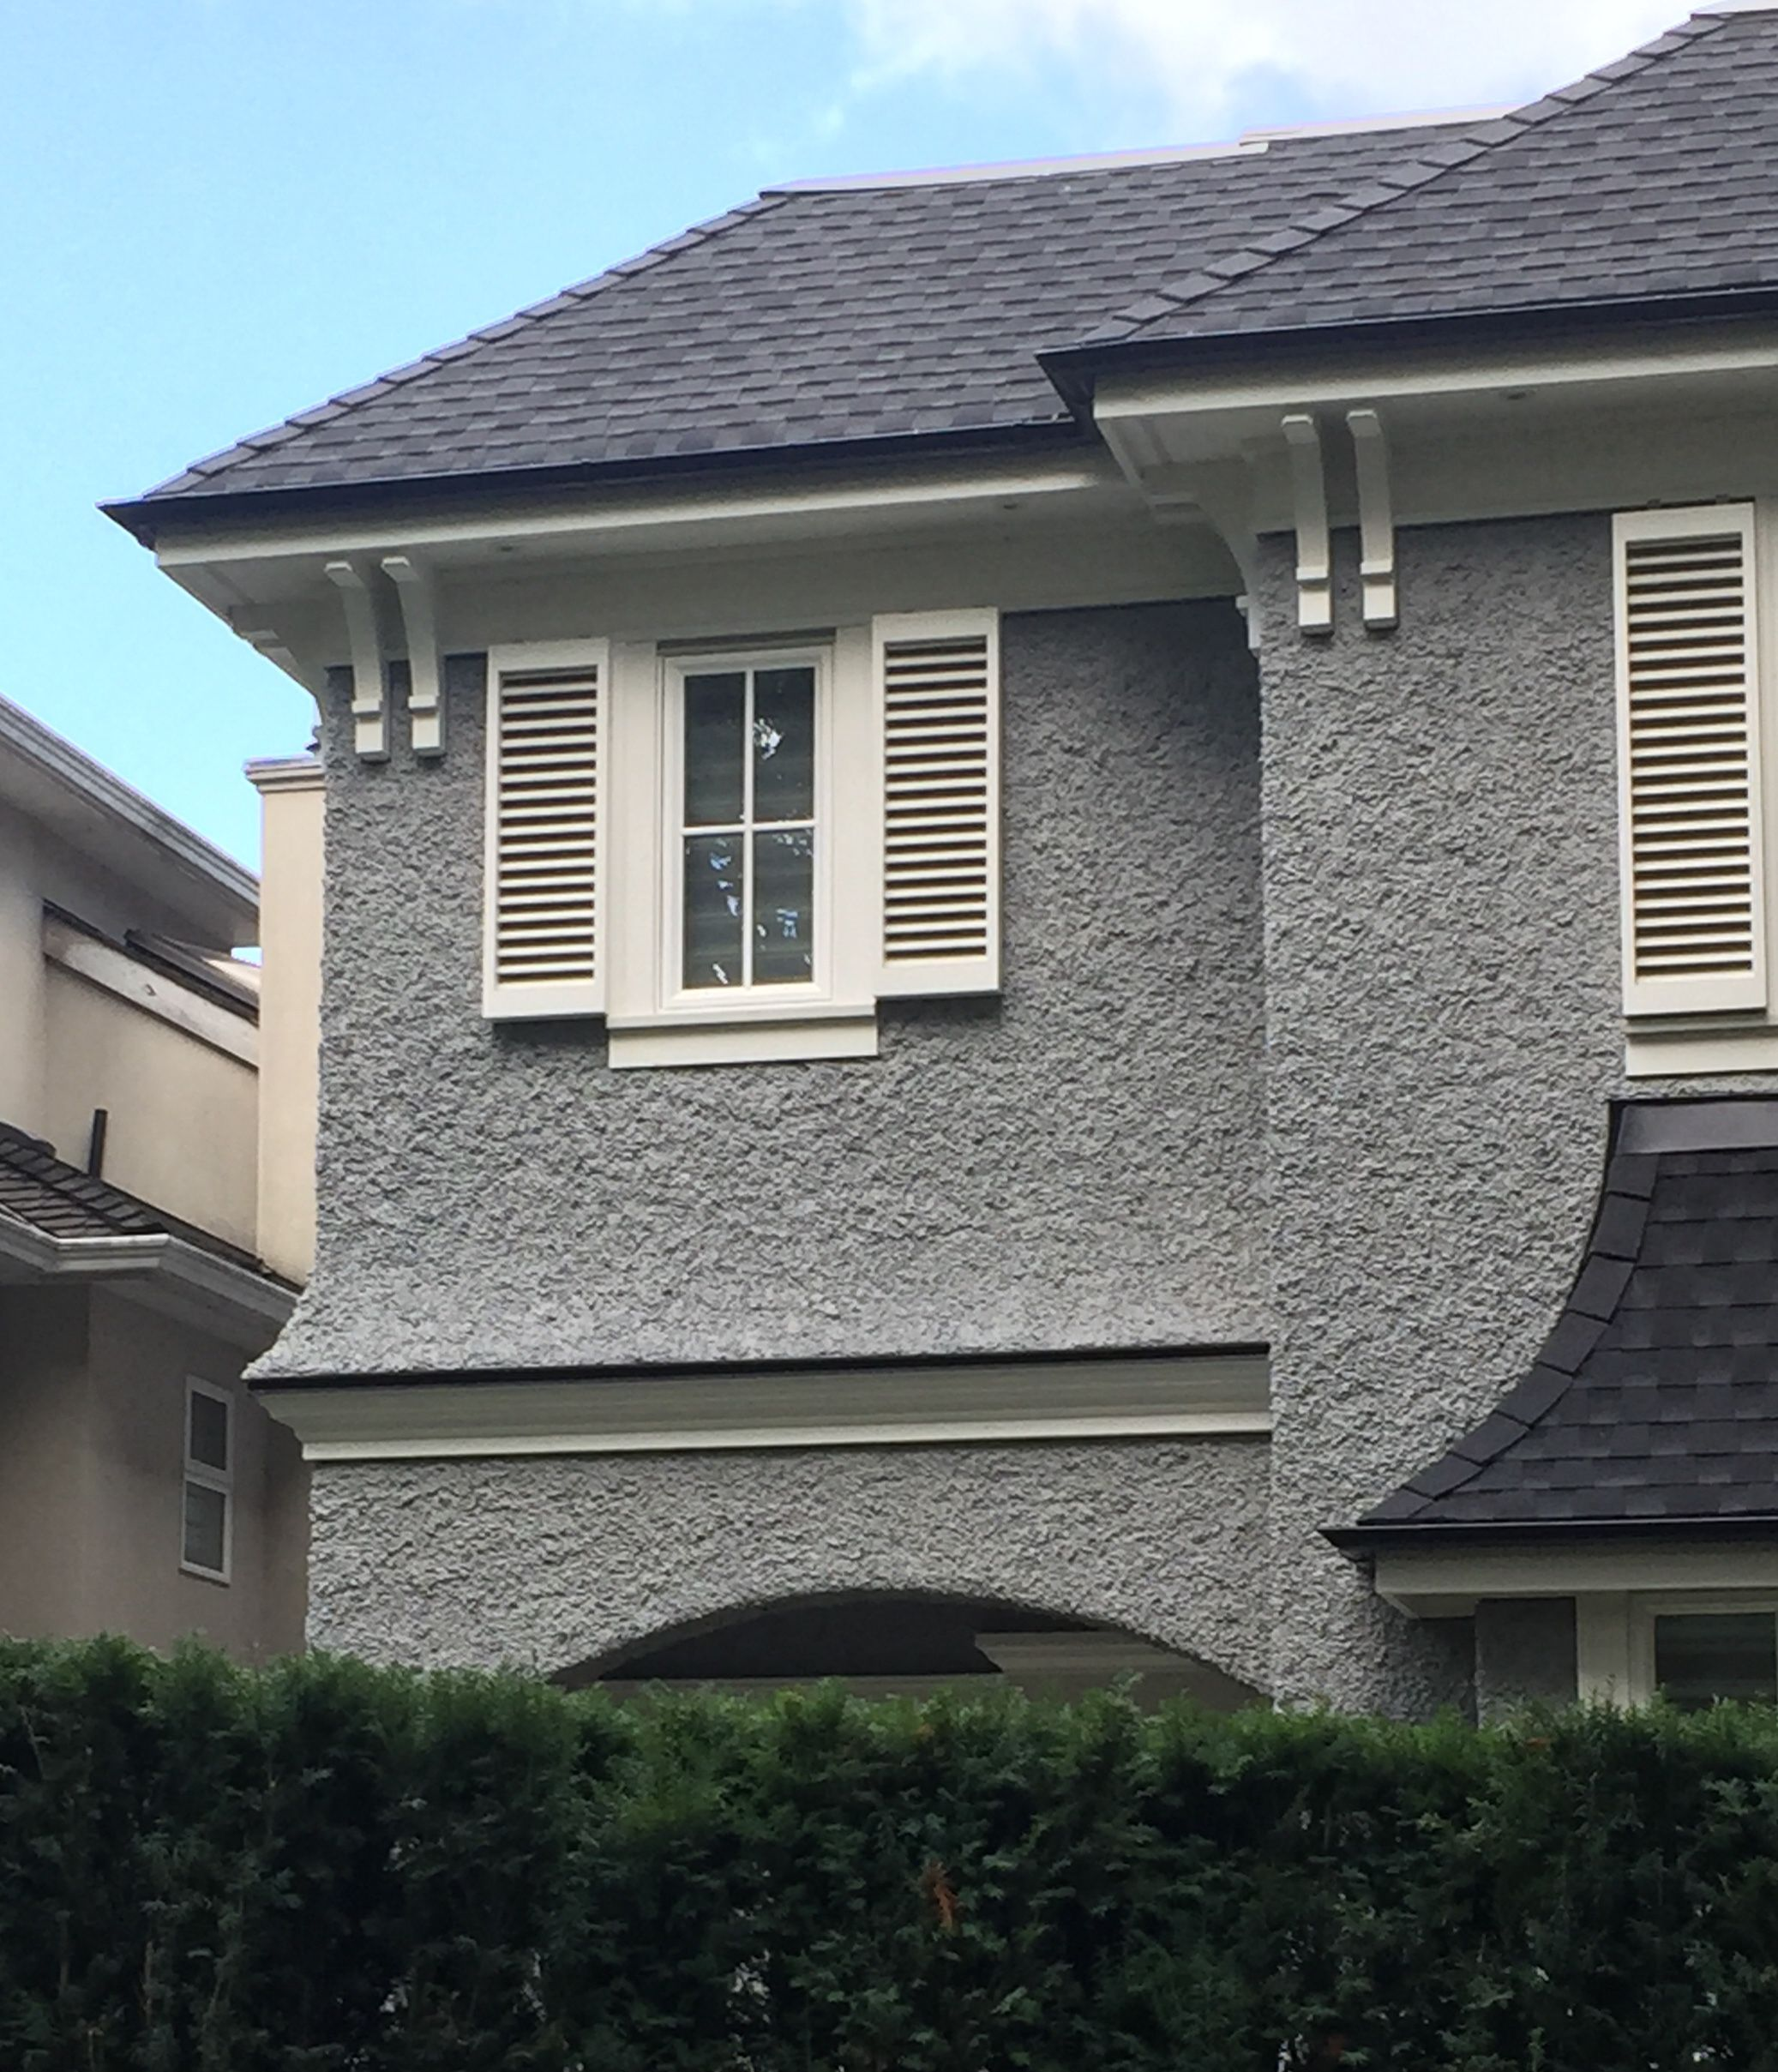 Exterior House Finishes Grey Stucco White Windows And Trim Black Roof And Gutters